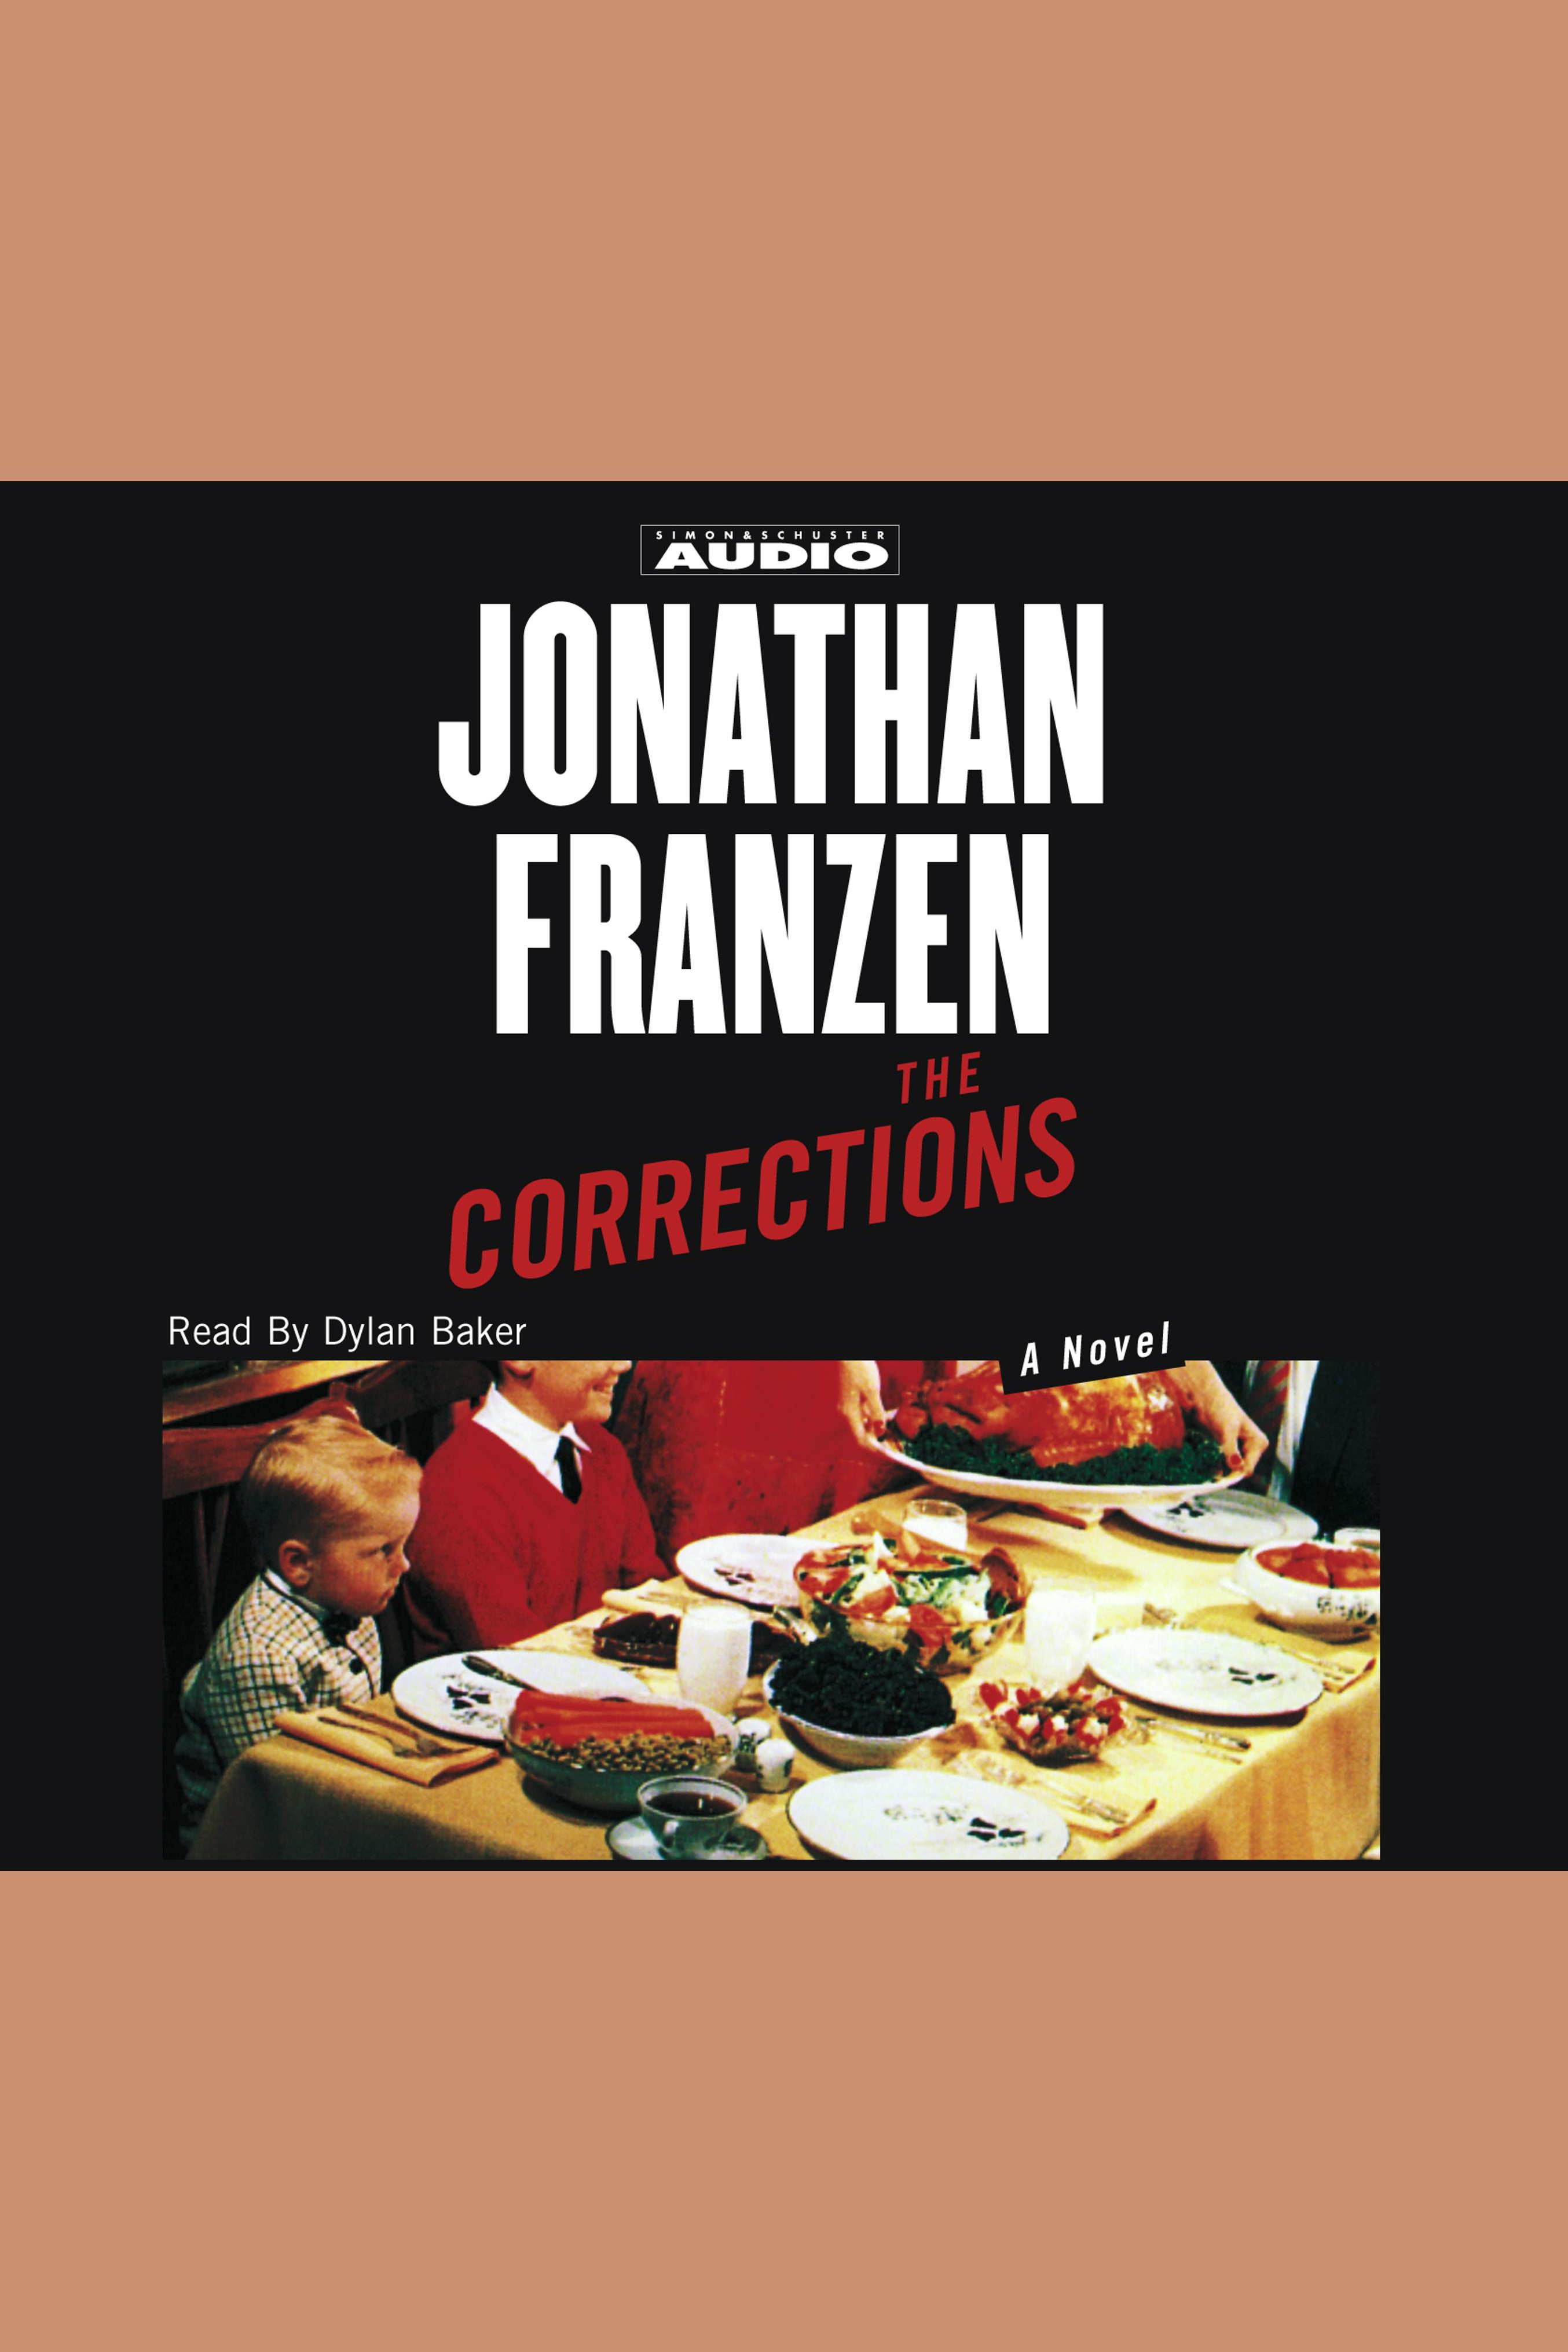 The Corrections cover image